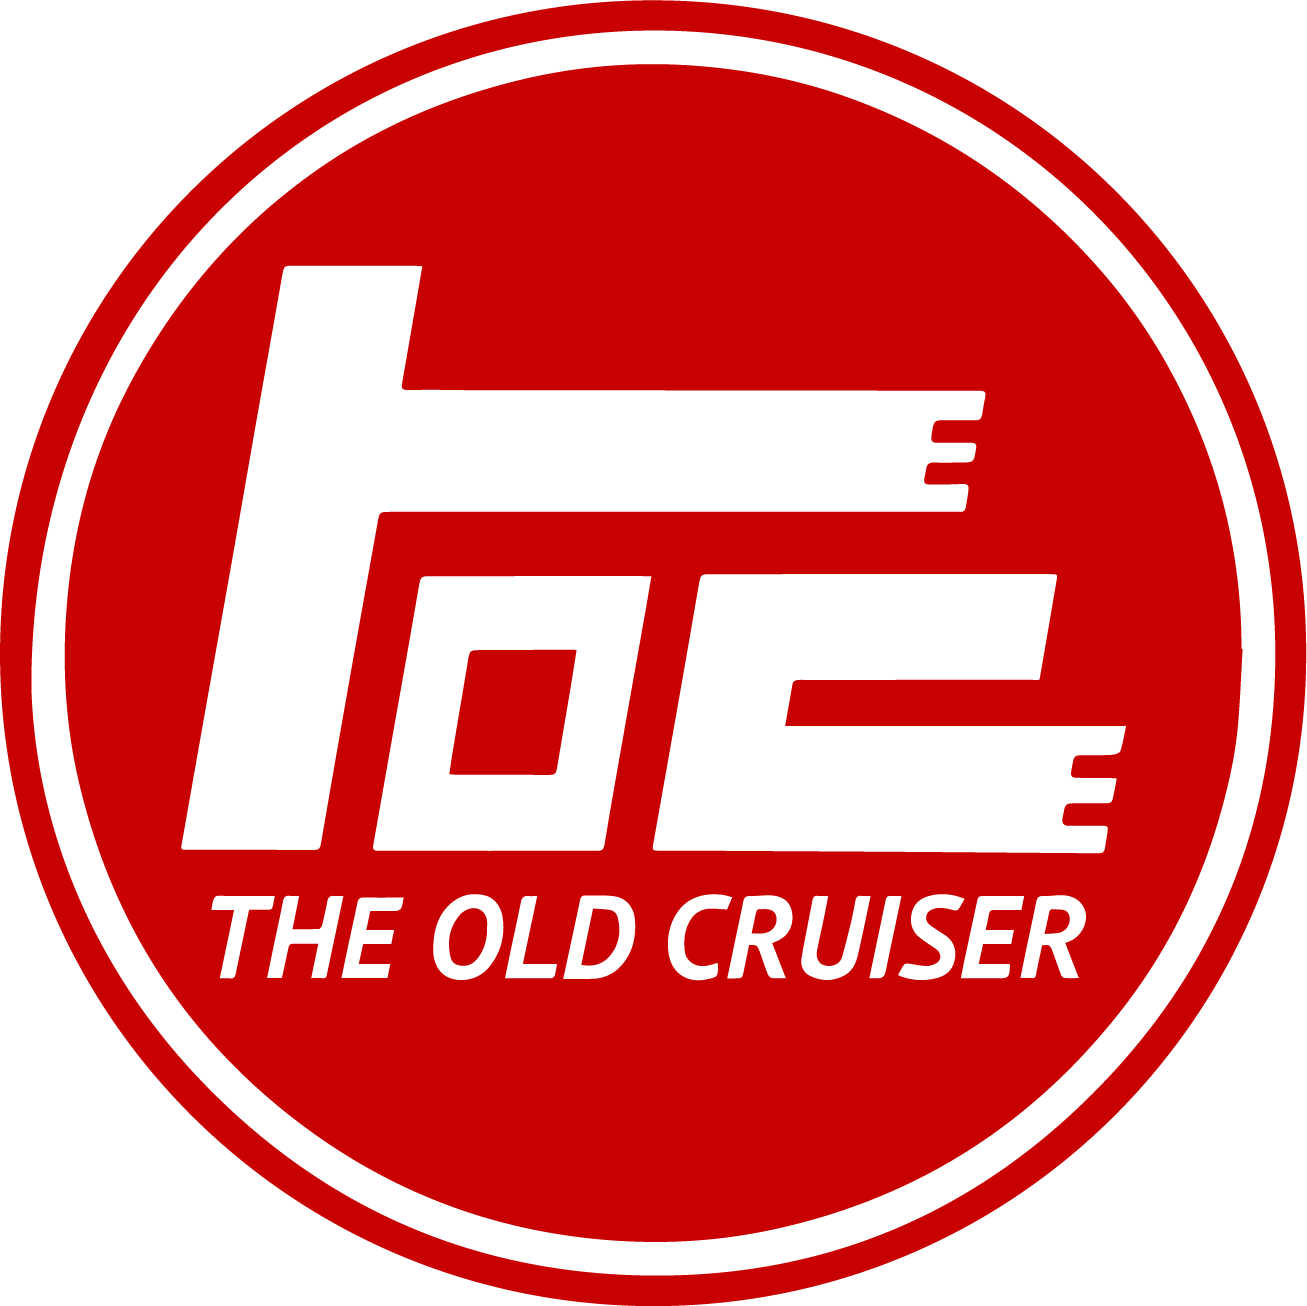 The Old Cruiser